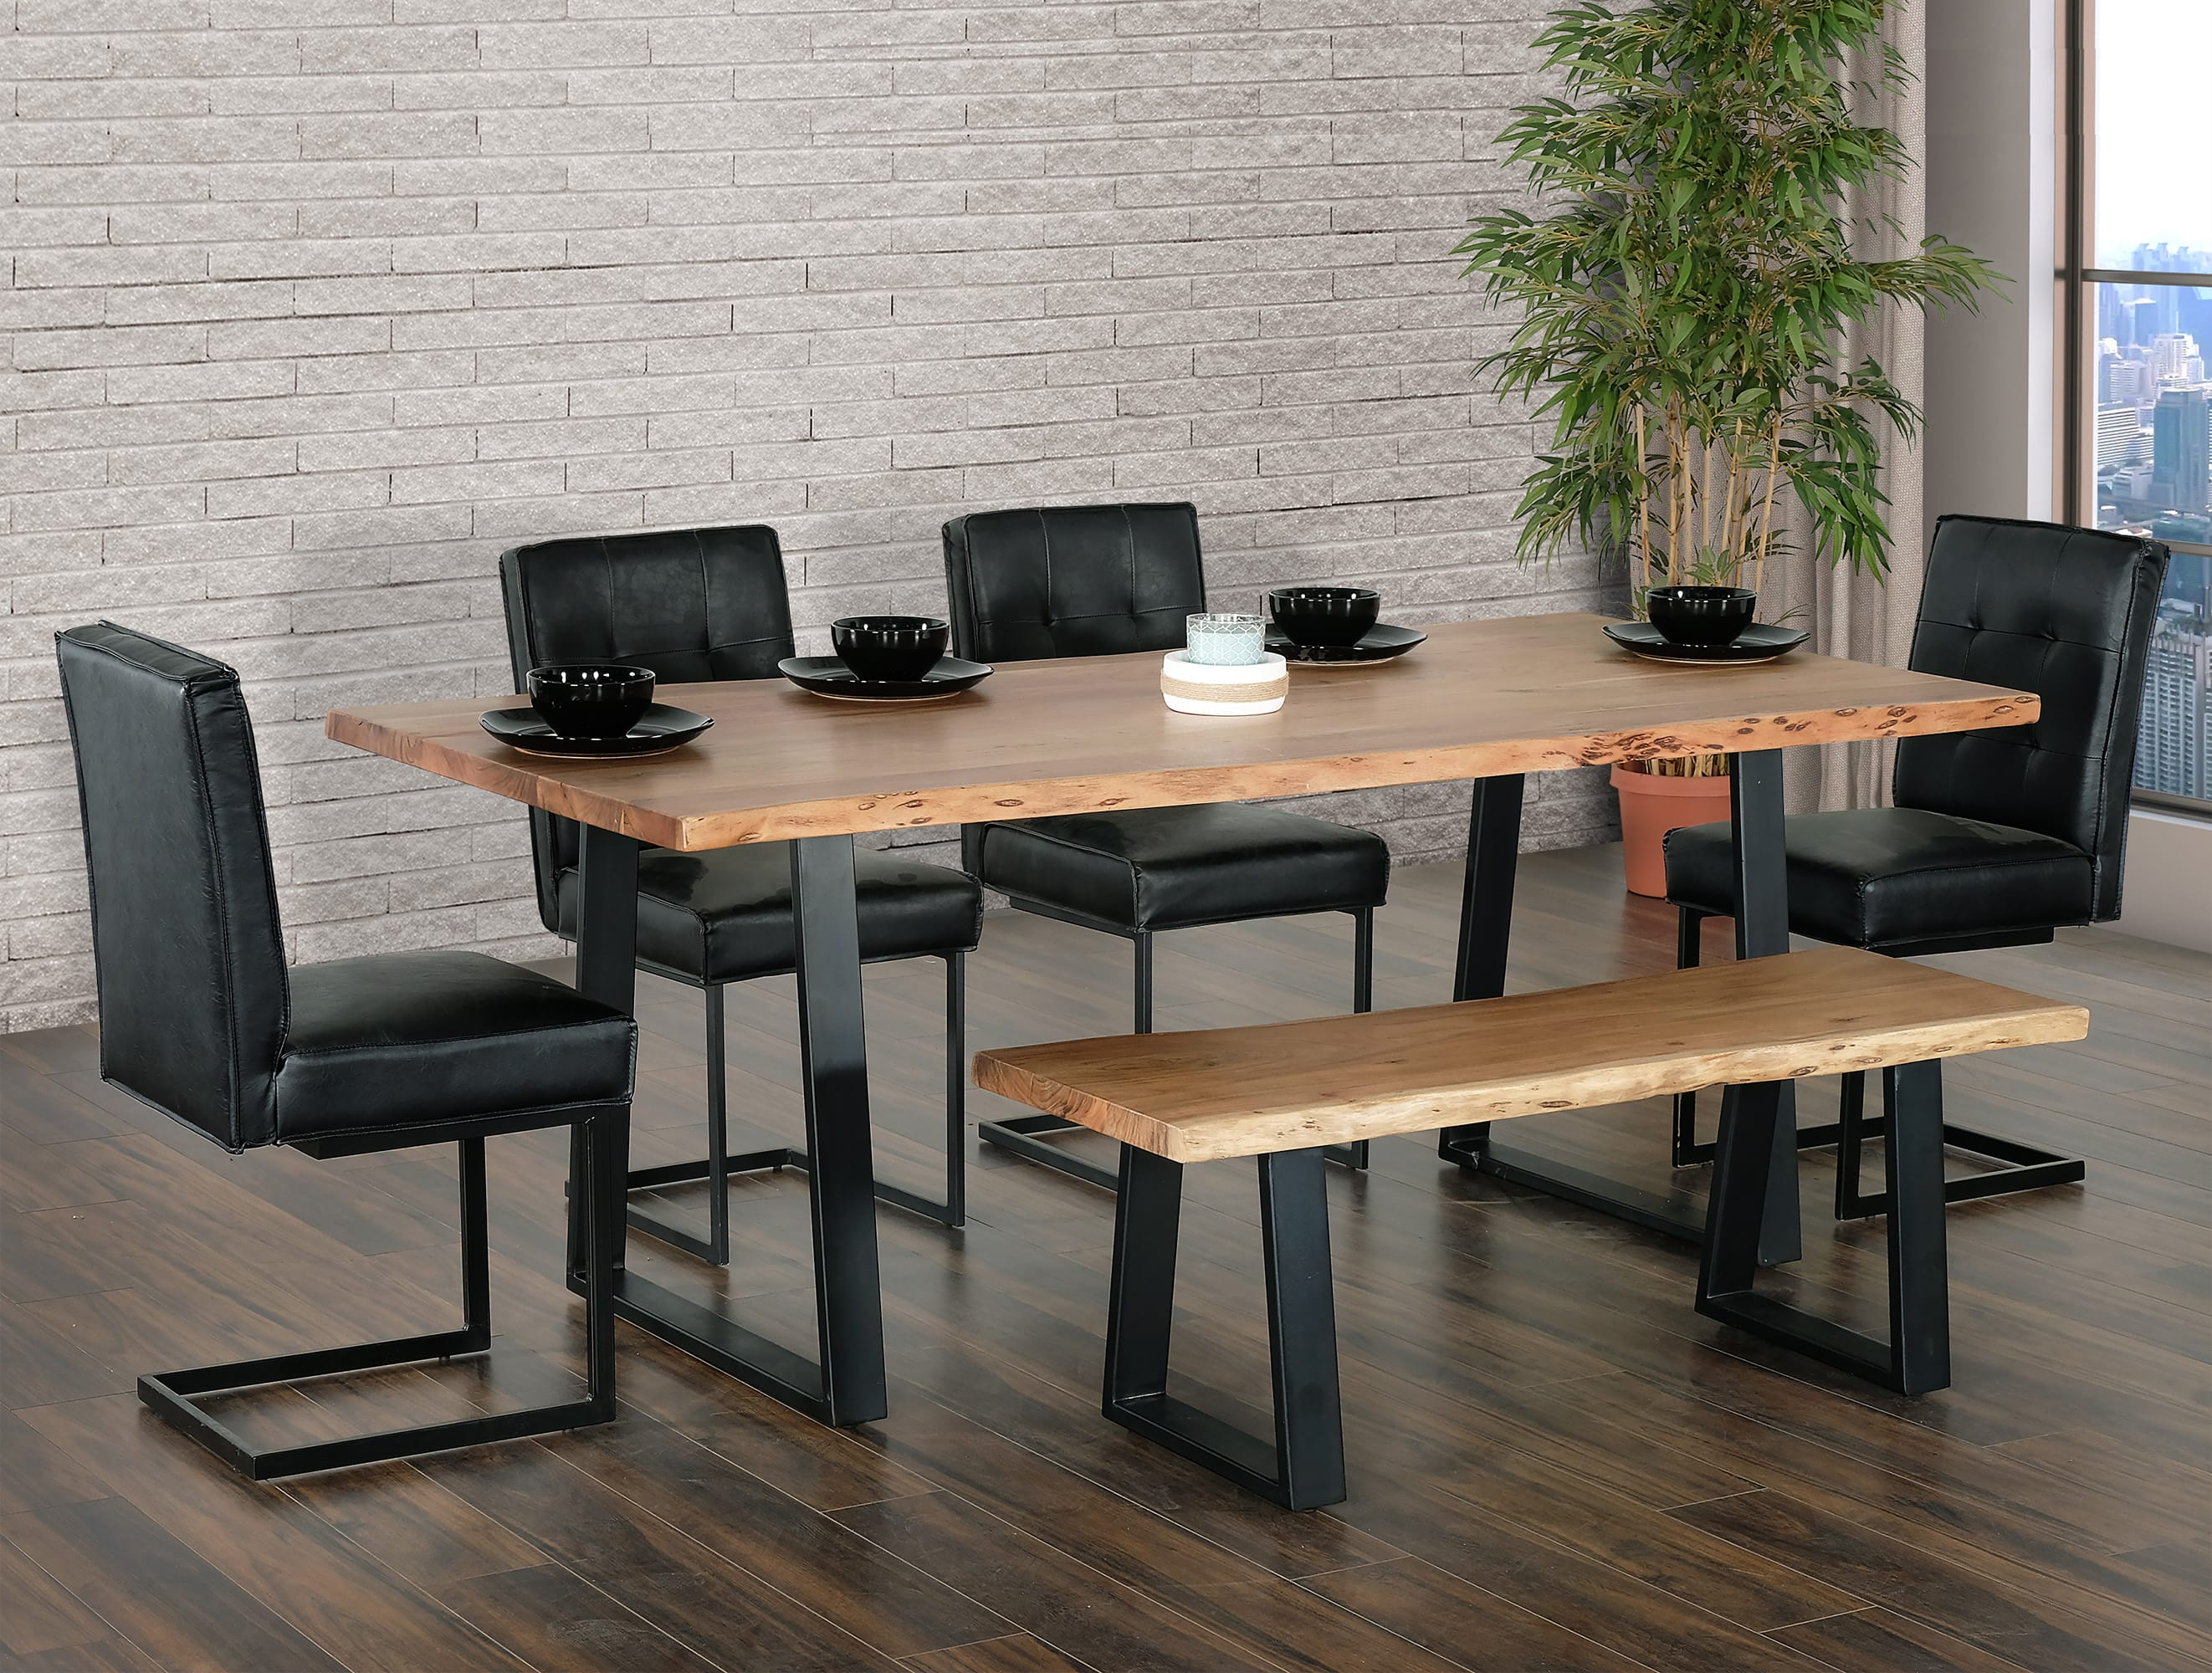 Coastline 8400 Natural Wood Dining Table By Primo